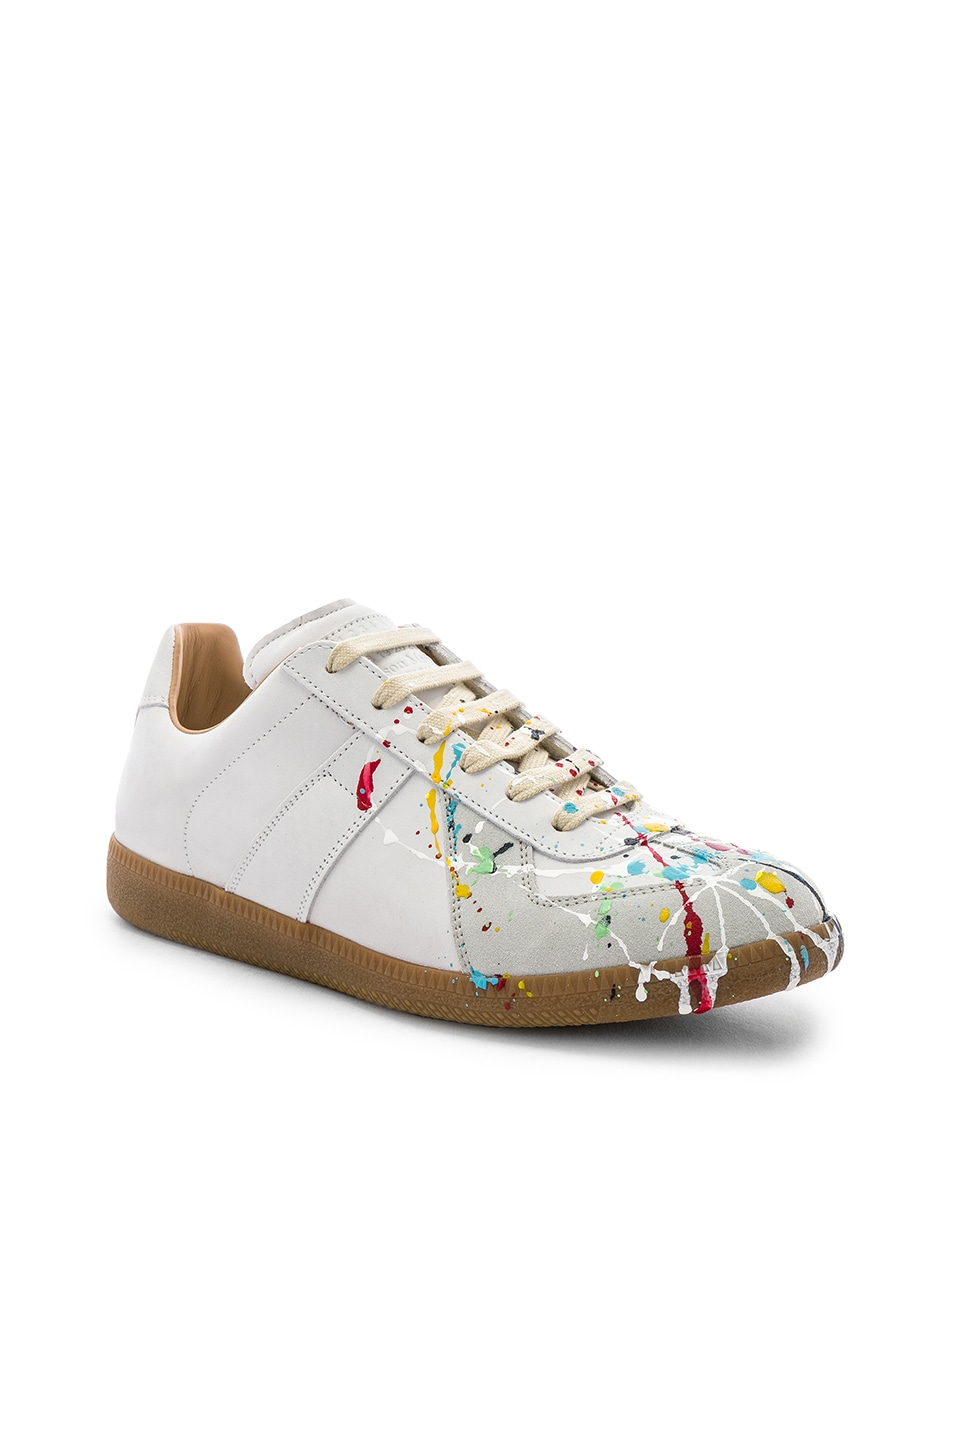 Image 1 of Maison Margiela Replica Low Top Painter in Off-White